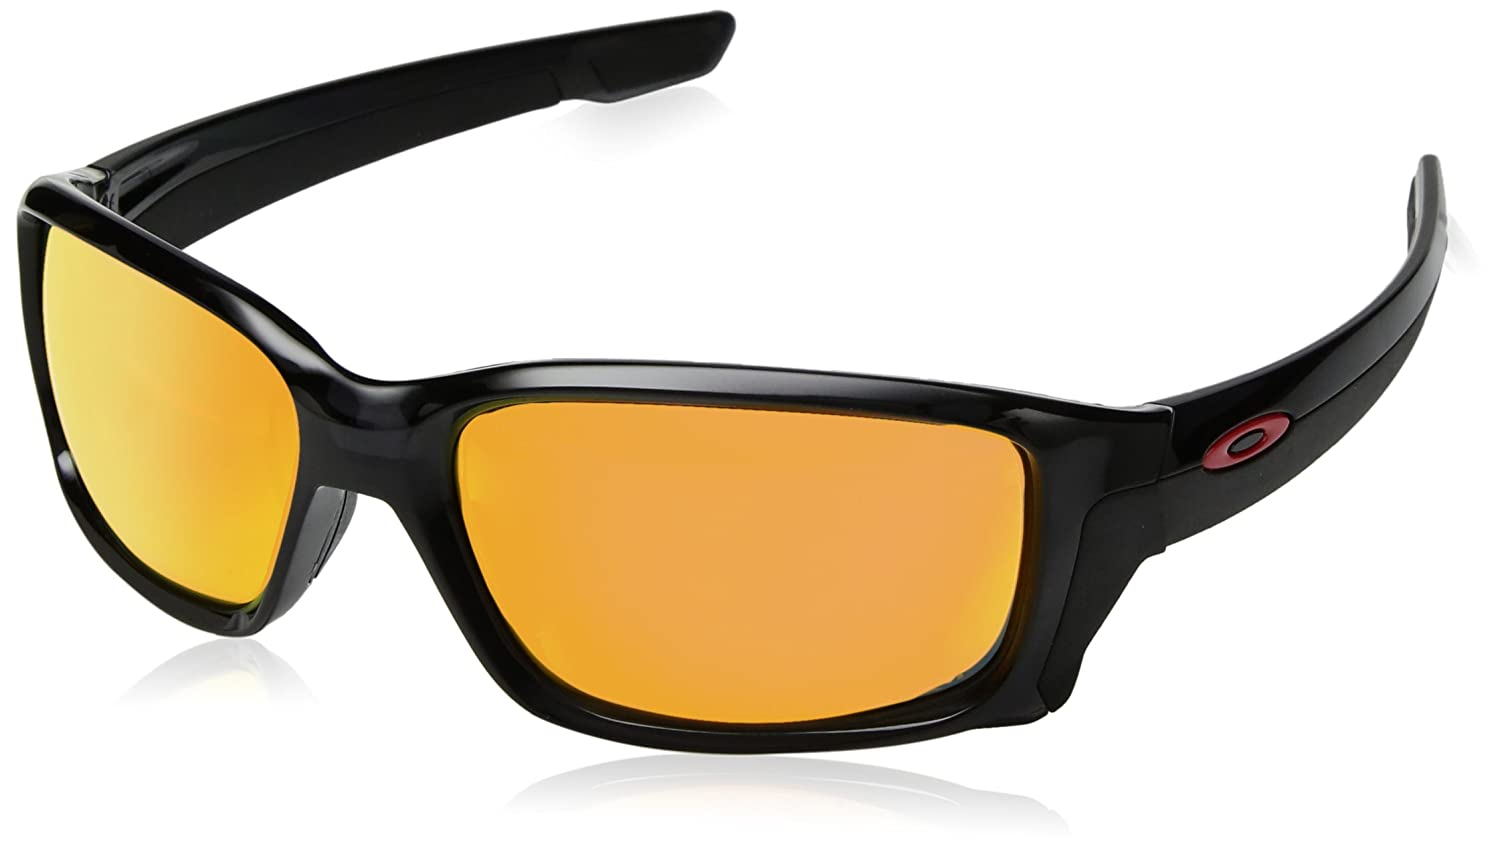 d9db829965 Amazon.com  Oakley Men s Straightlink Sunglasses